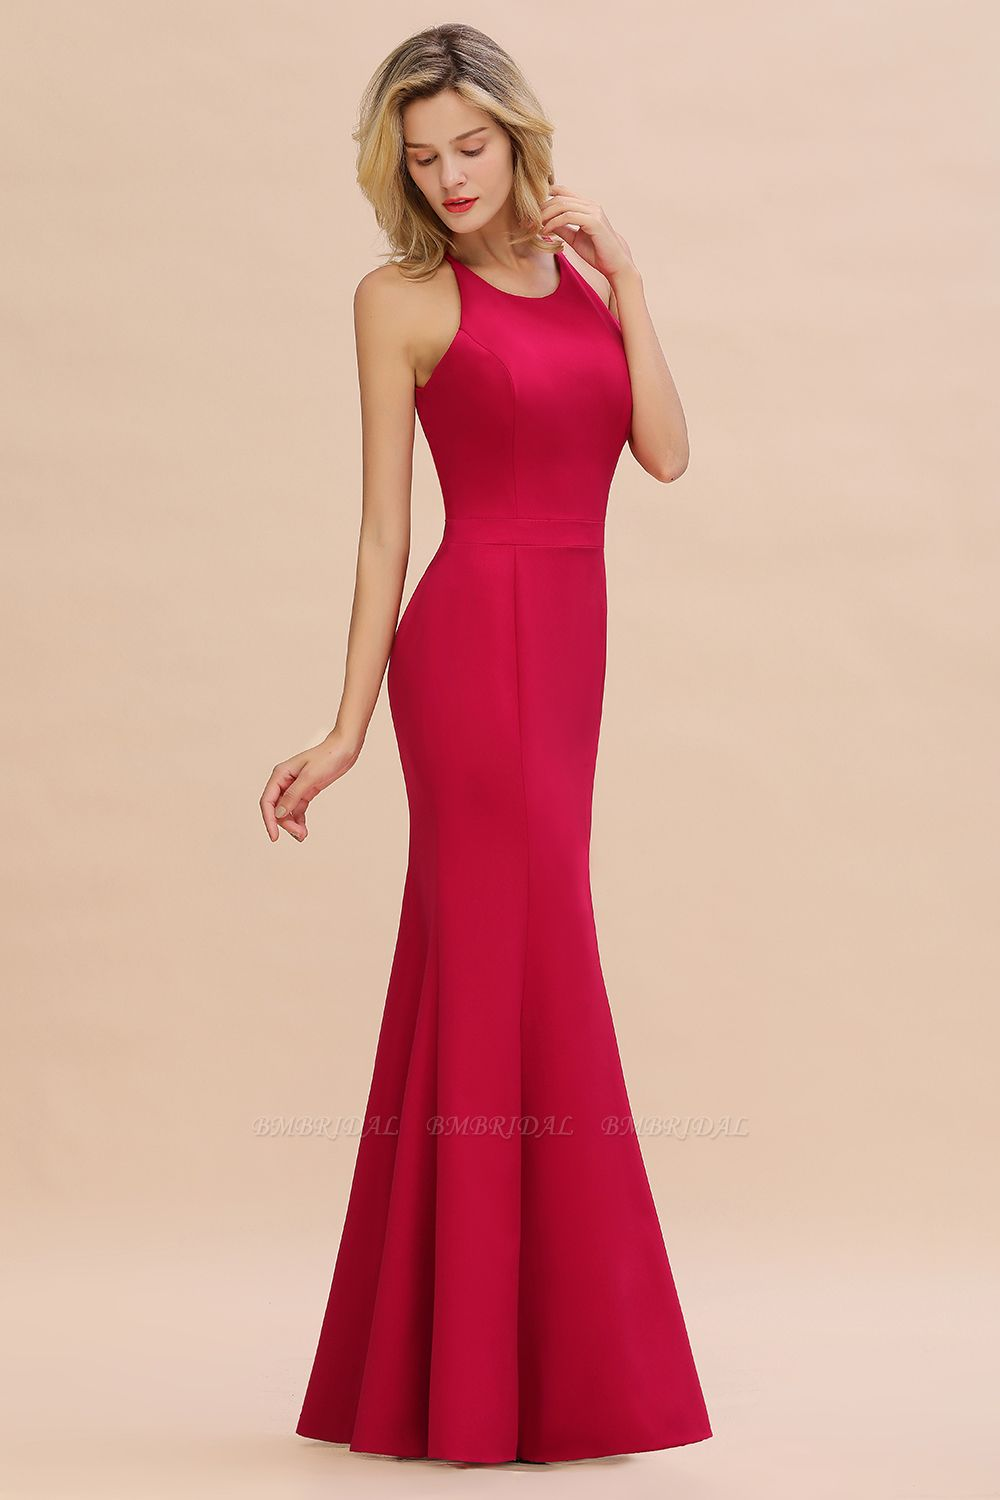 BMbridal Sexy Red Halter Mermaid Prom Dress Long Evening Gowns Online